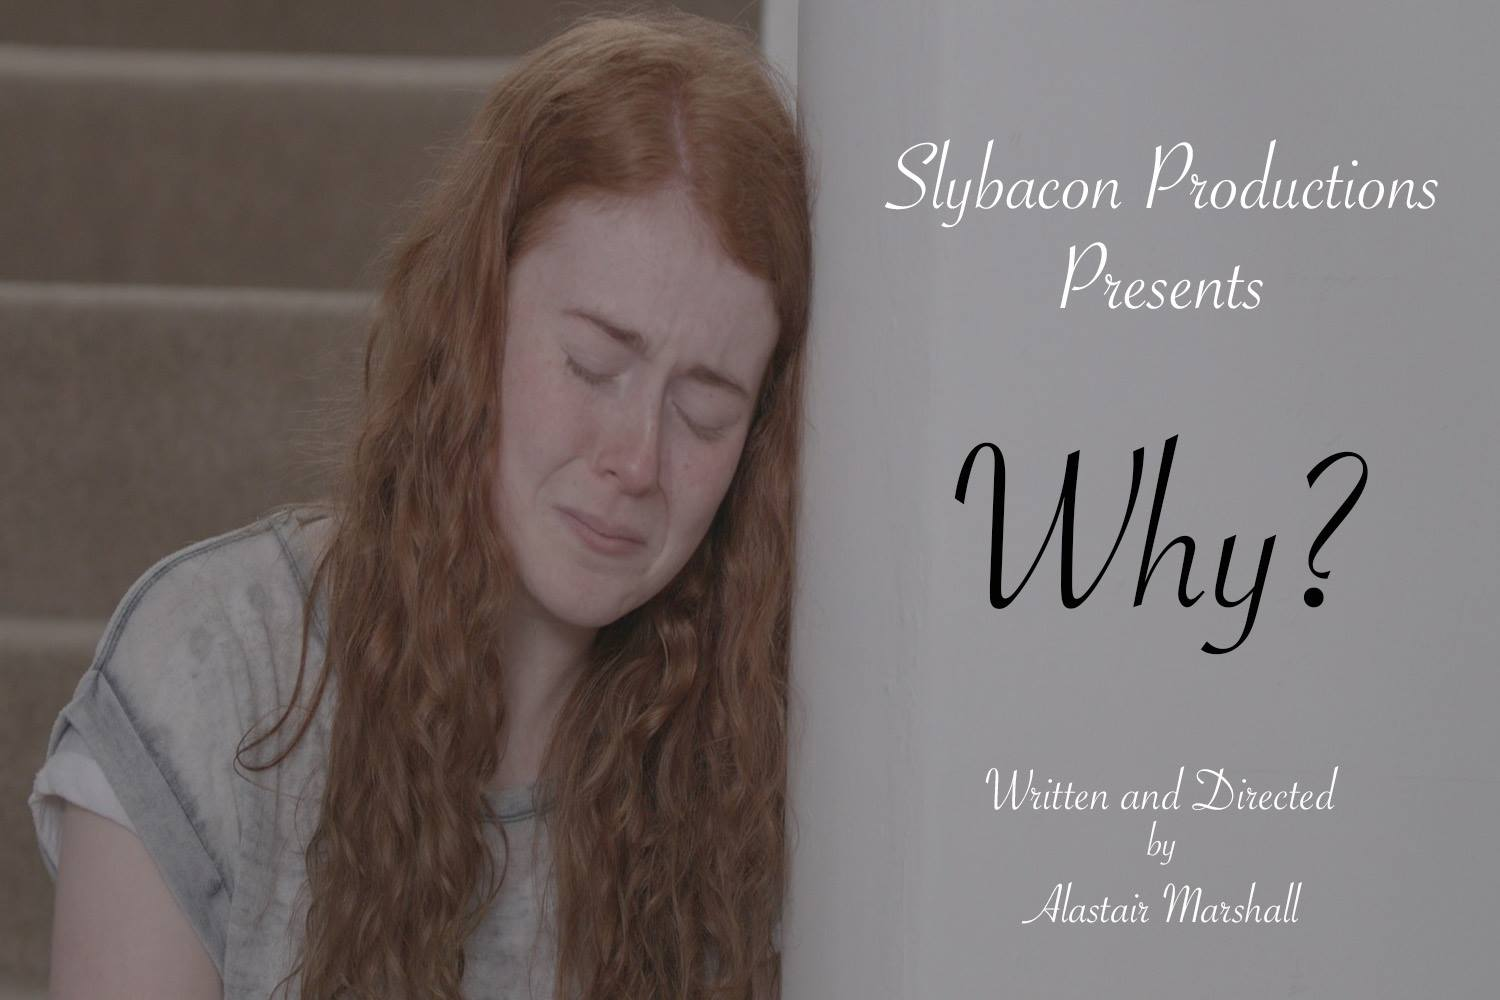 Why? - Slybacon ProductionsWriter and Director: Alastair Marshall